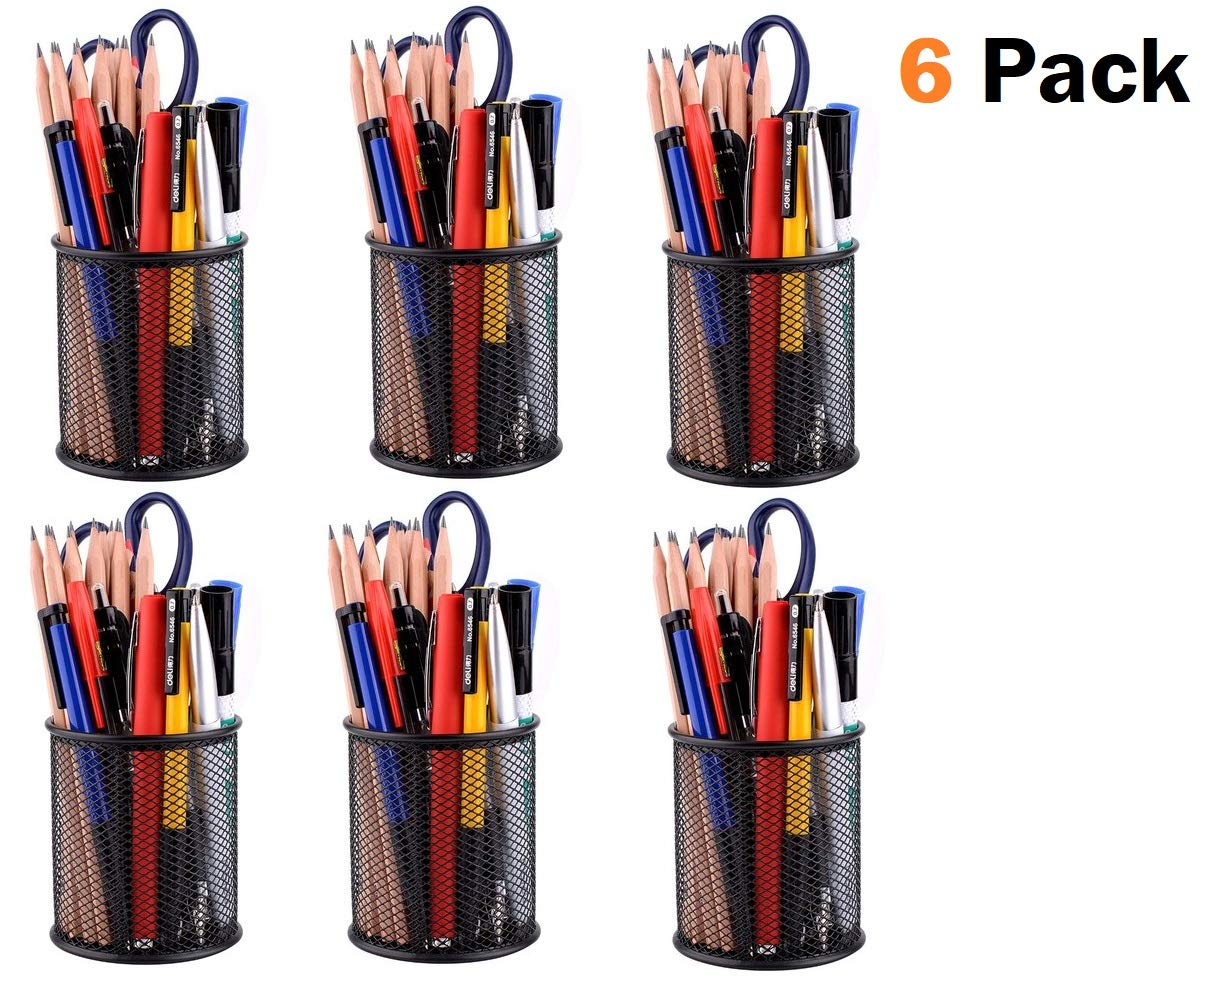 Stylastra Pack of 43 Metal Round Pen Stands Desk Organisers: Amazon